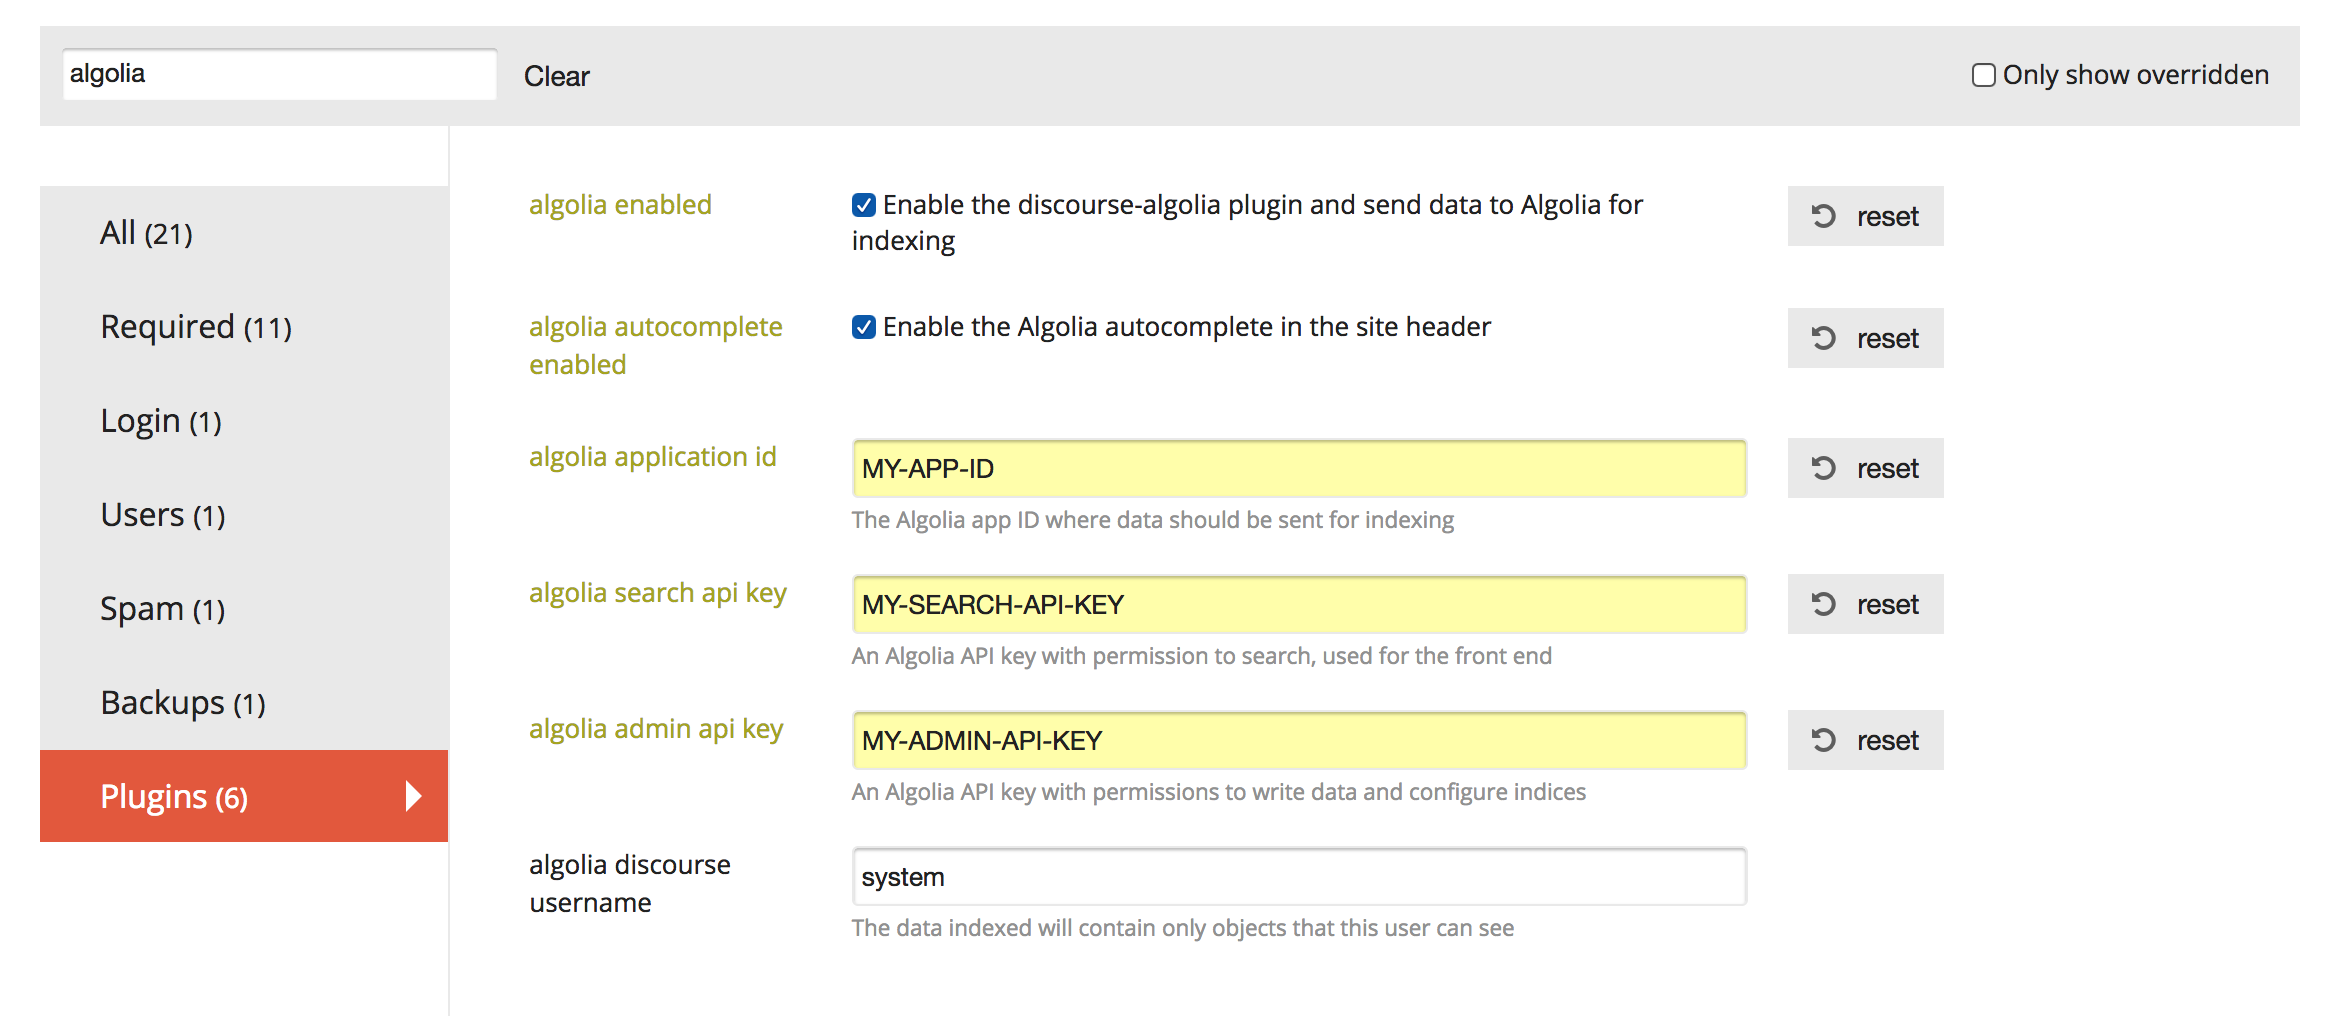 discourse-algolia populated configuration options